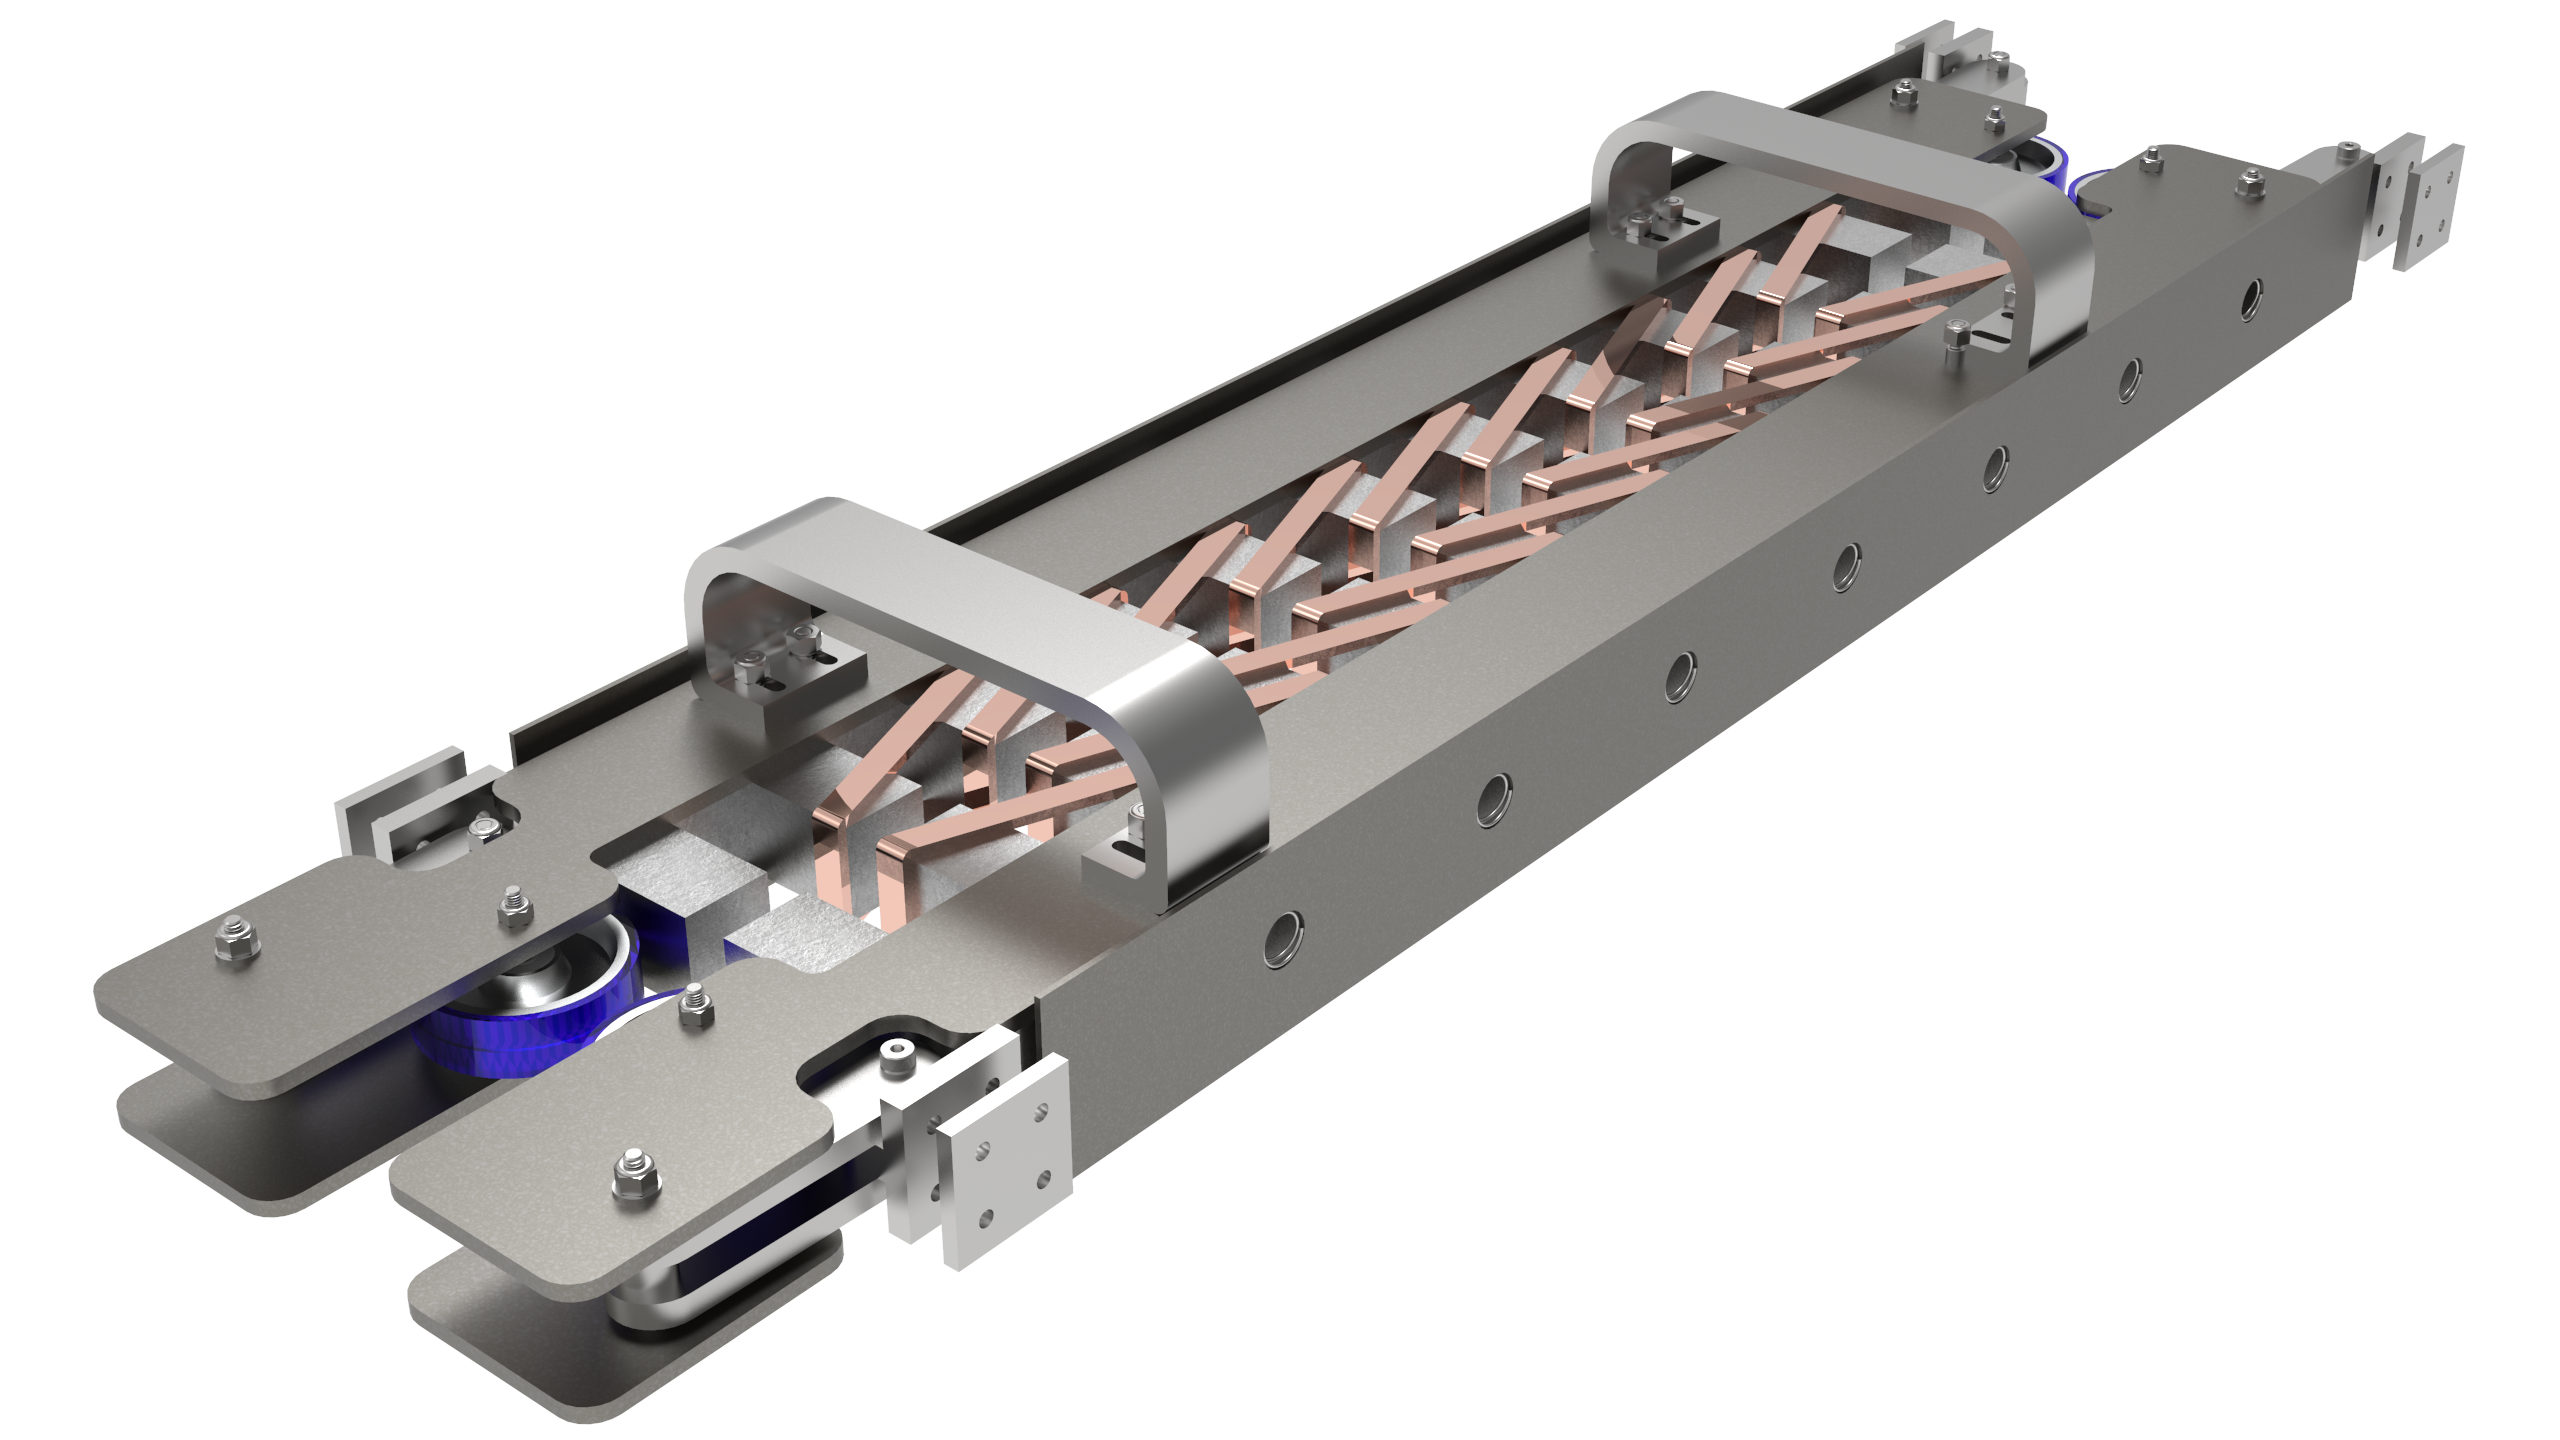 render of the linear induction motor